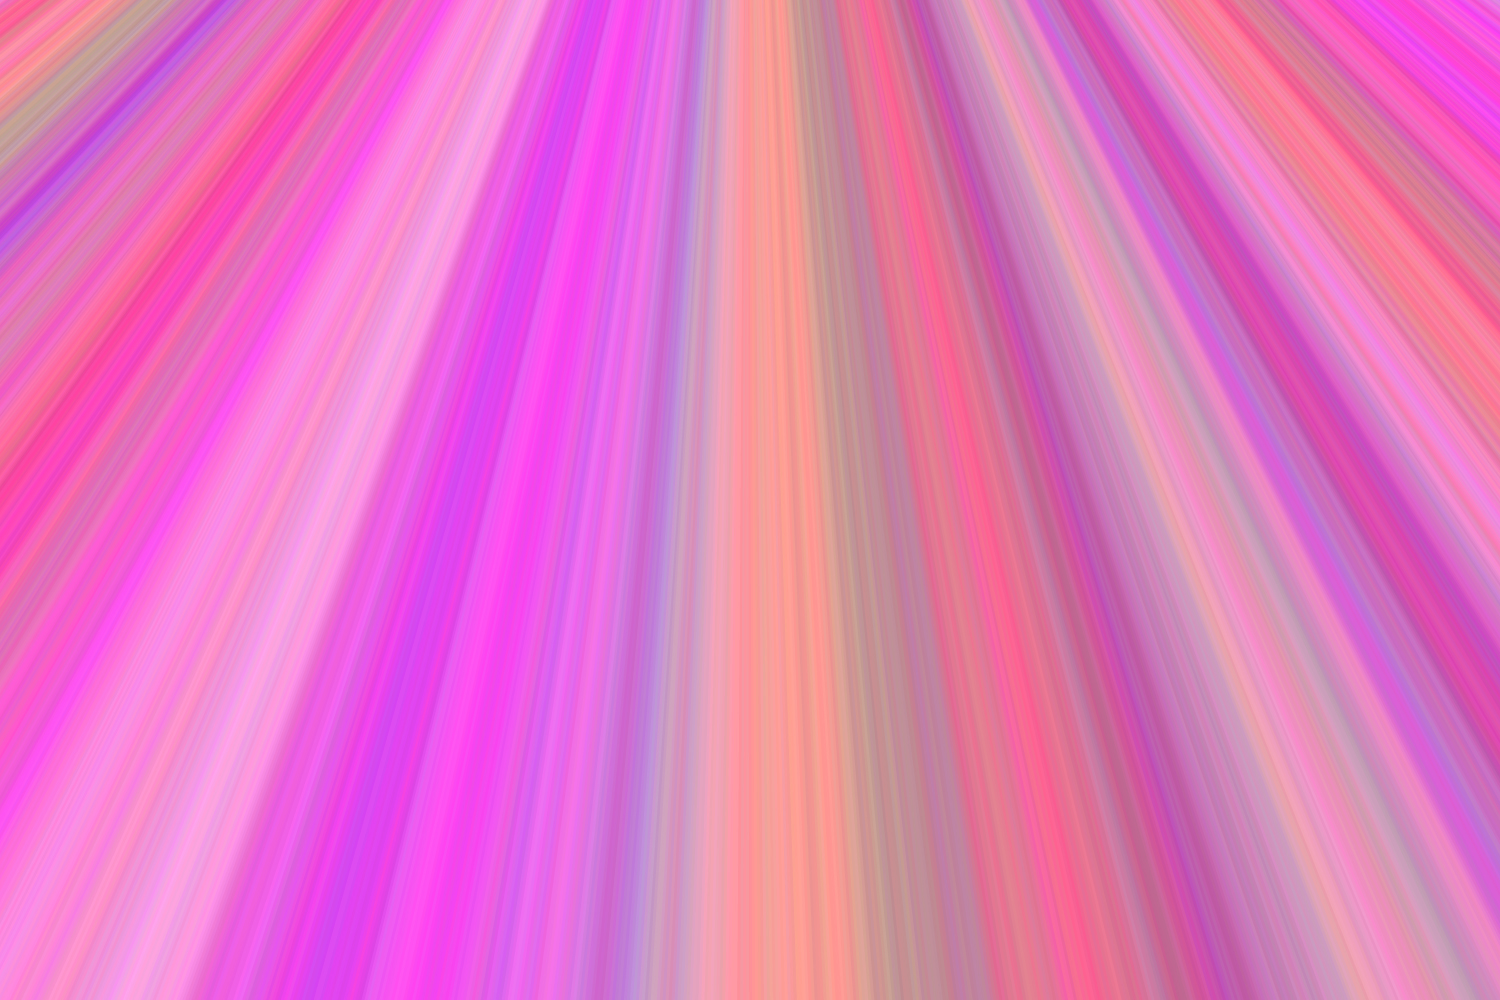 10 Color Backgrounds (AI, EPS, JPG 5000x5000) example image 10